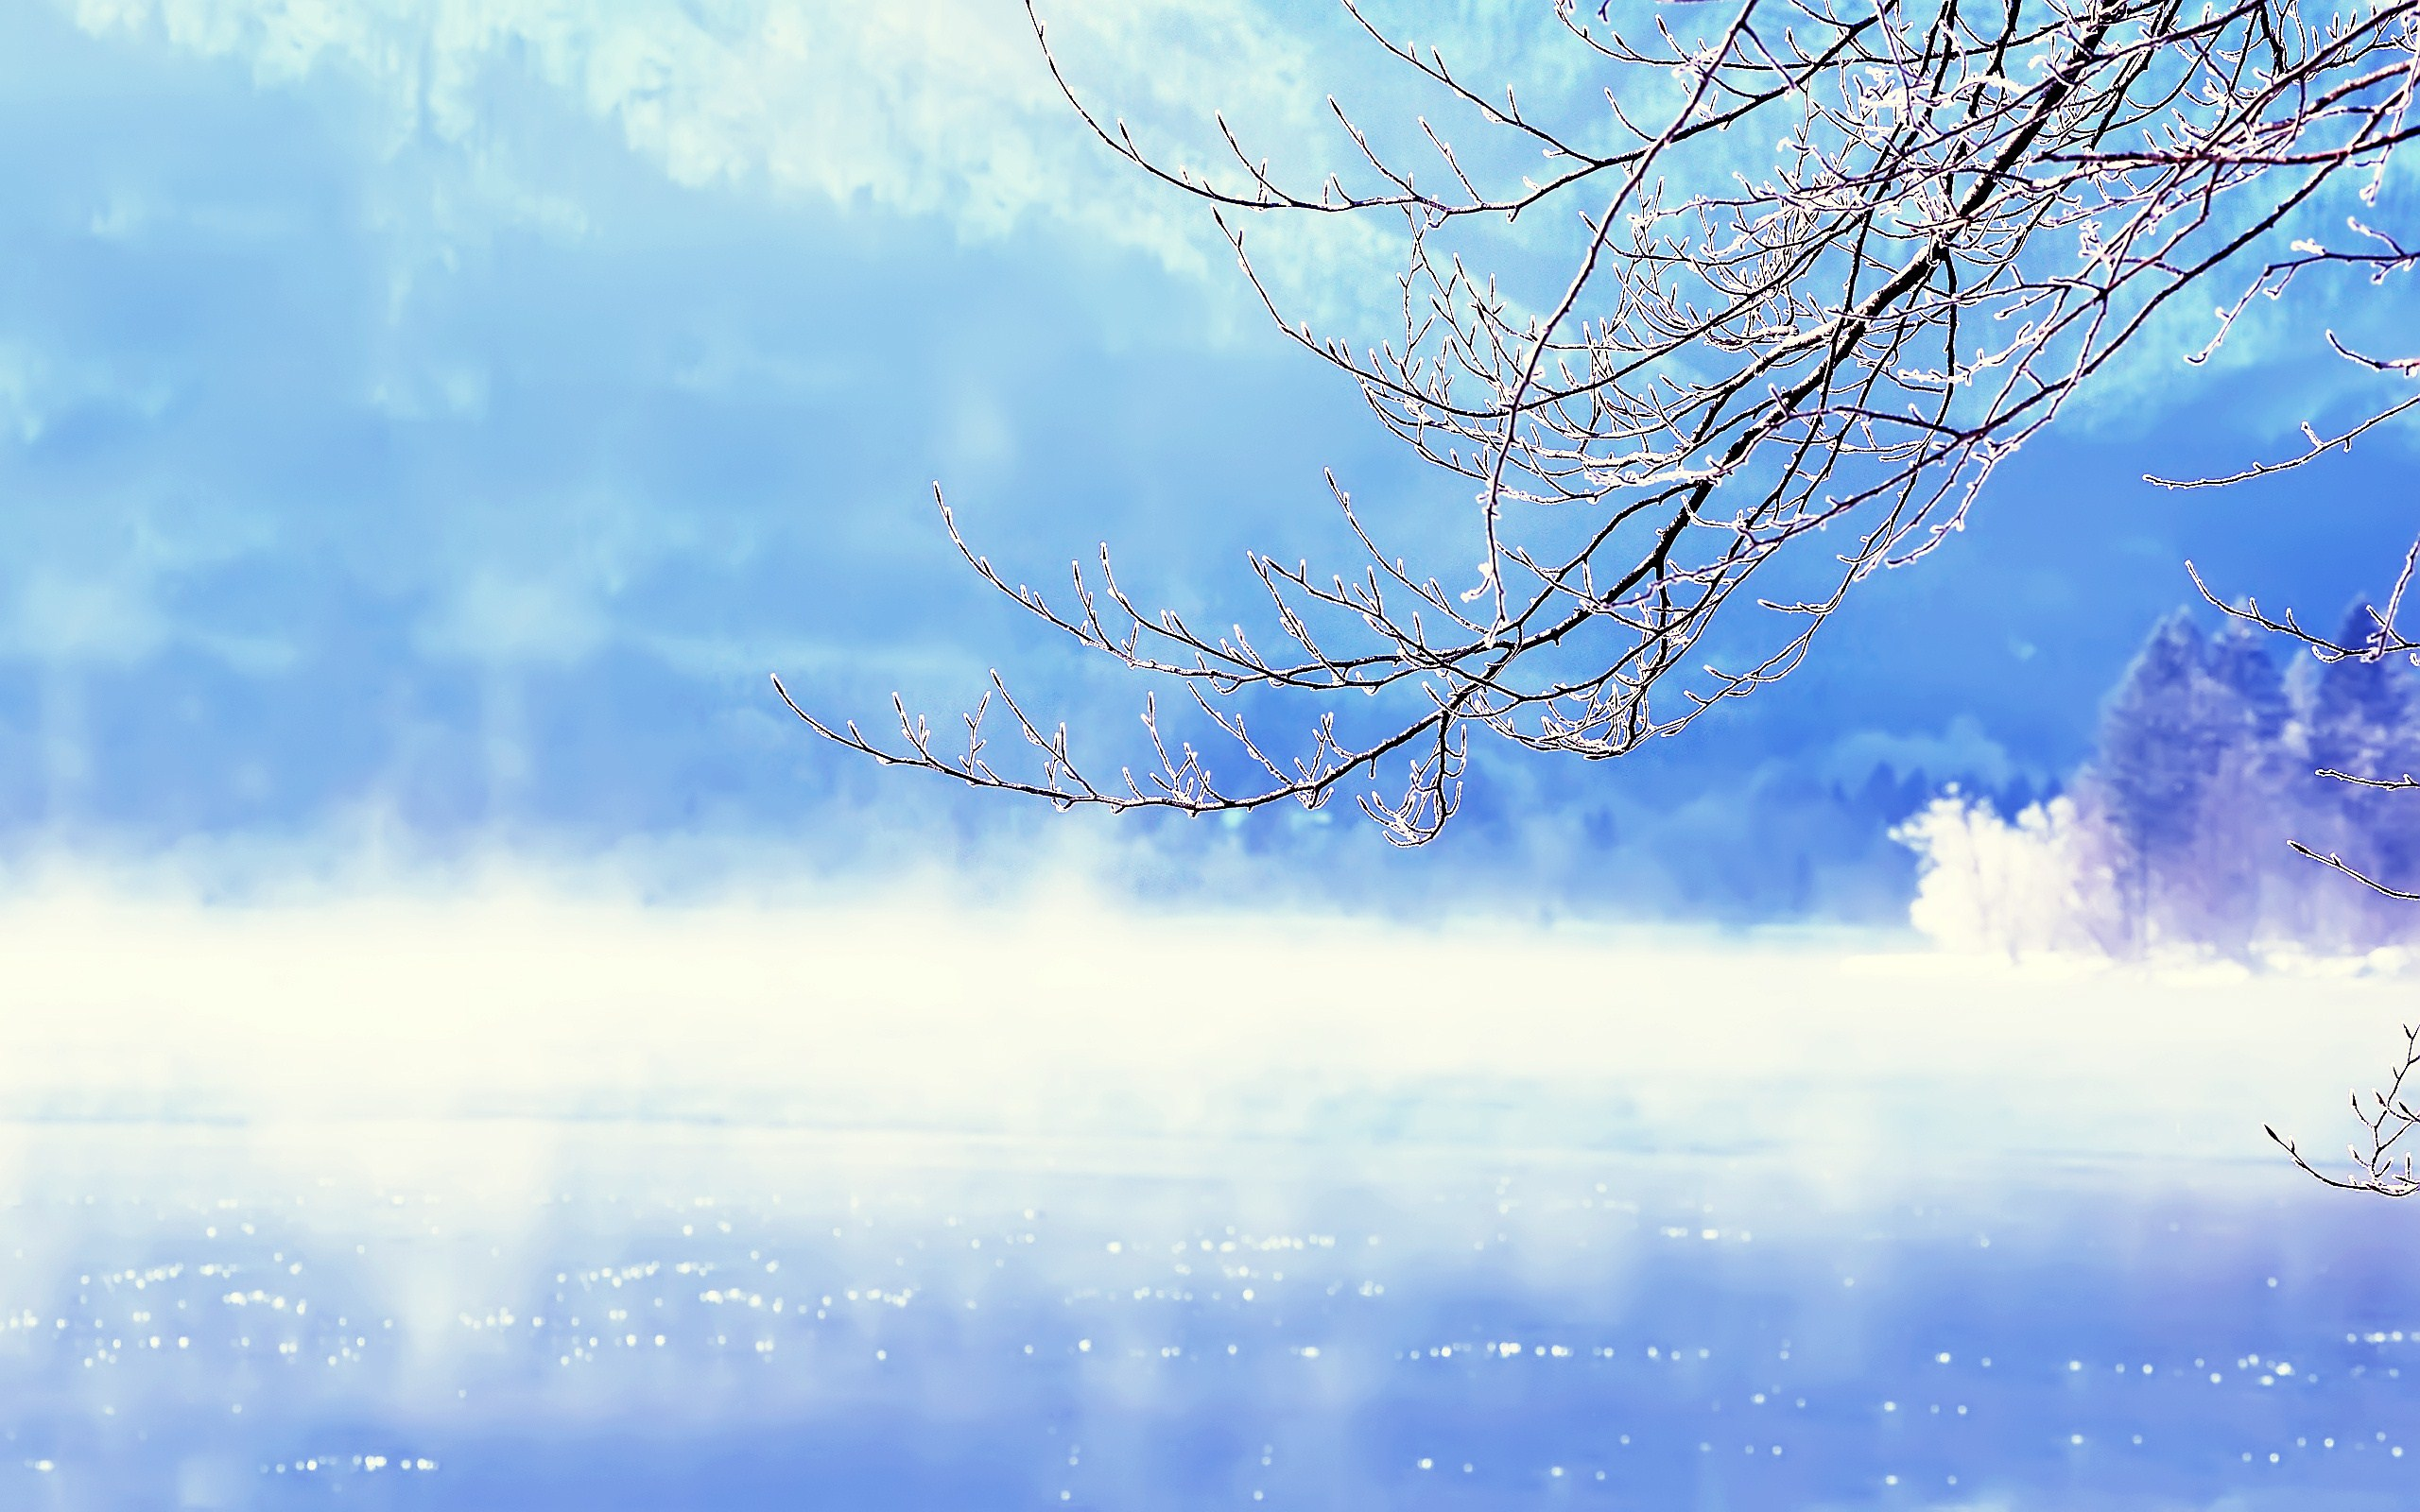 Lake Winter Branches Nature HD wallpaper 2560x1600 ...